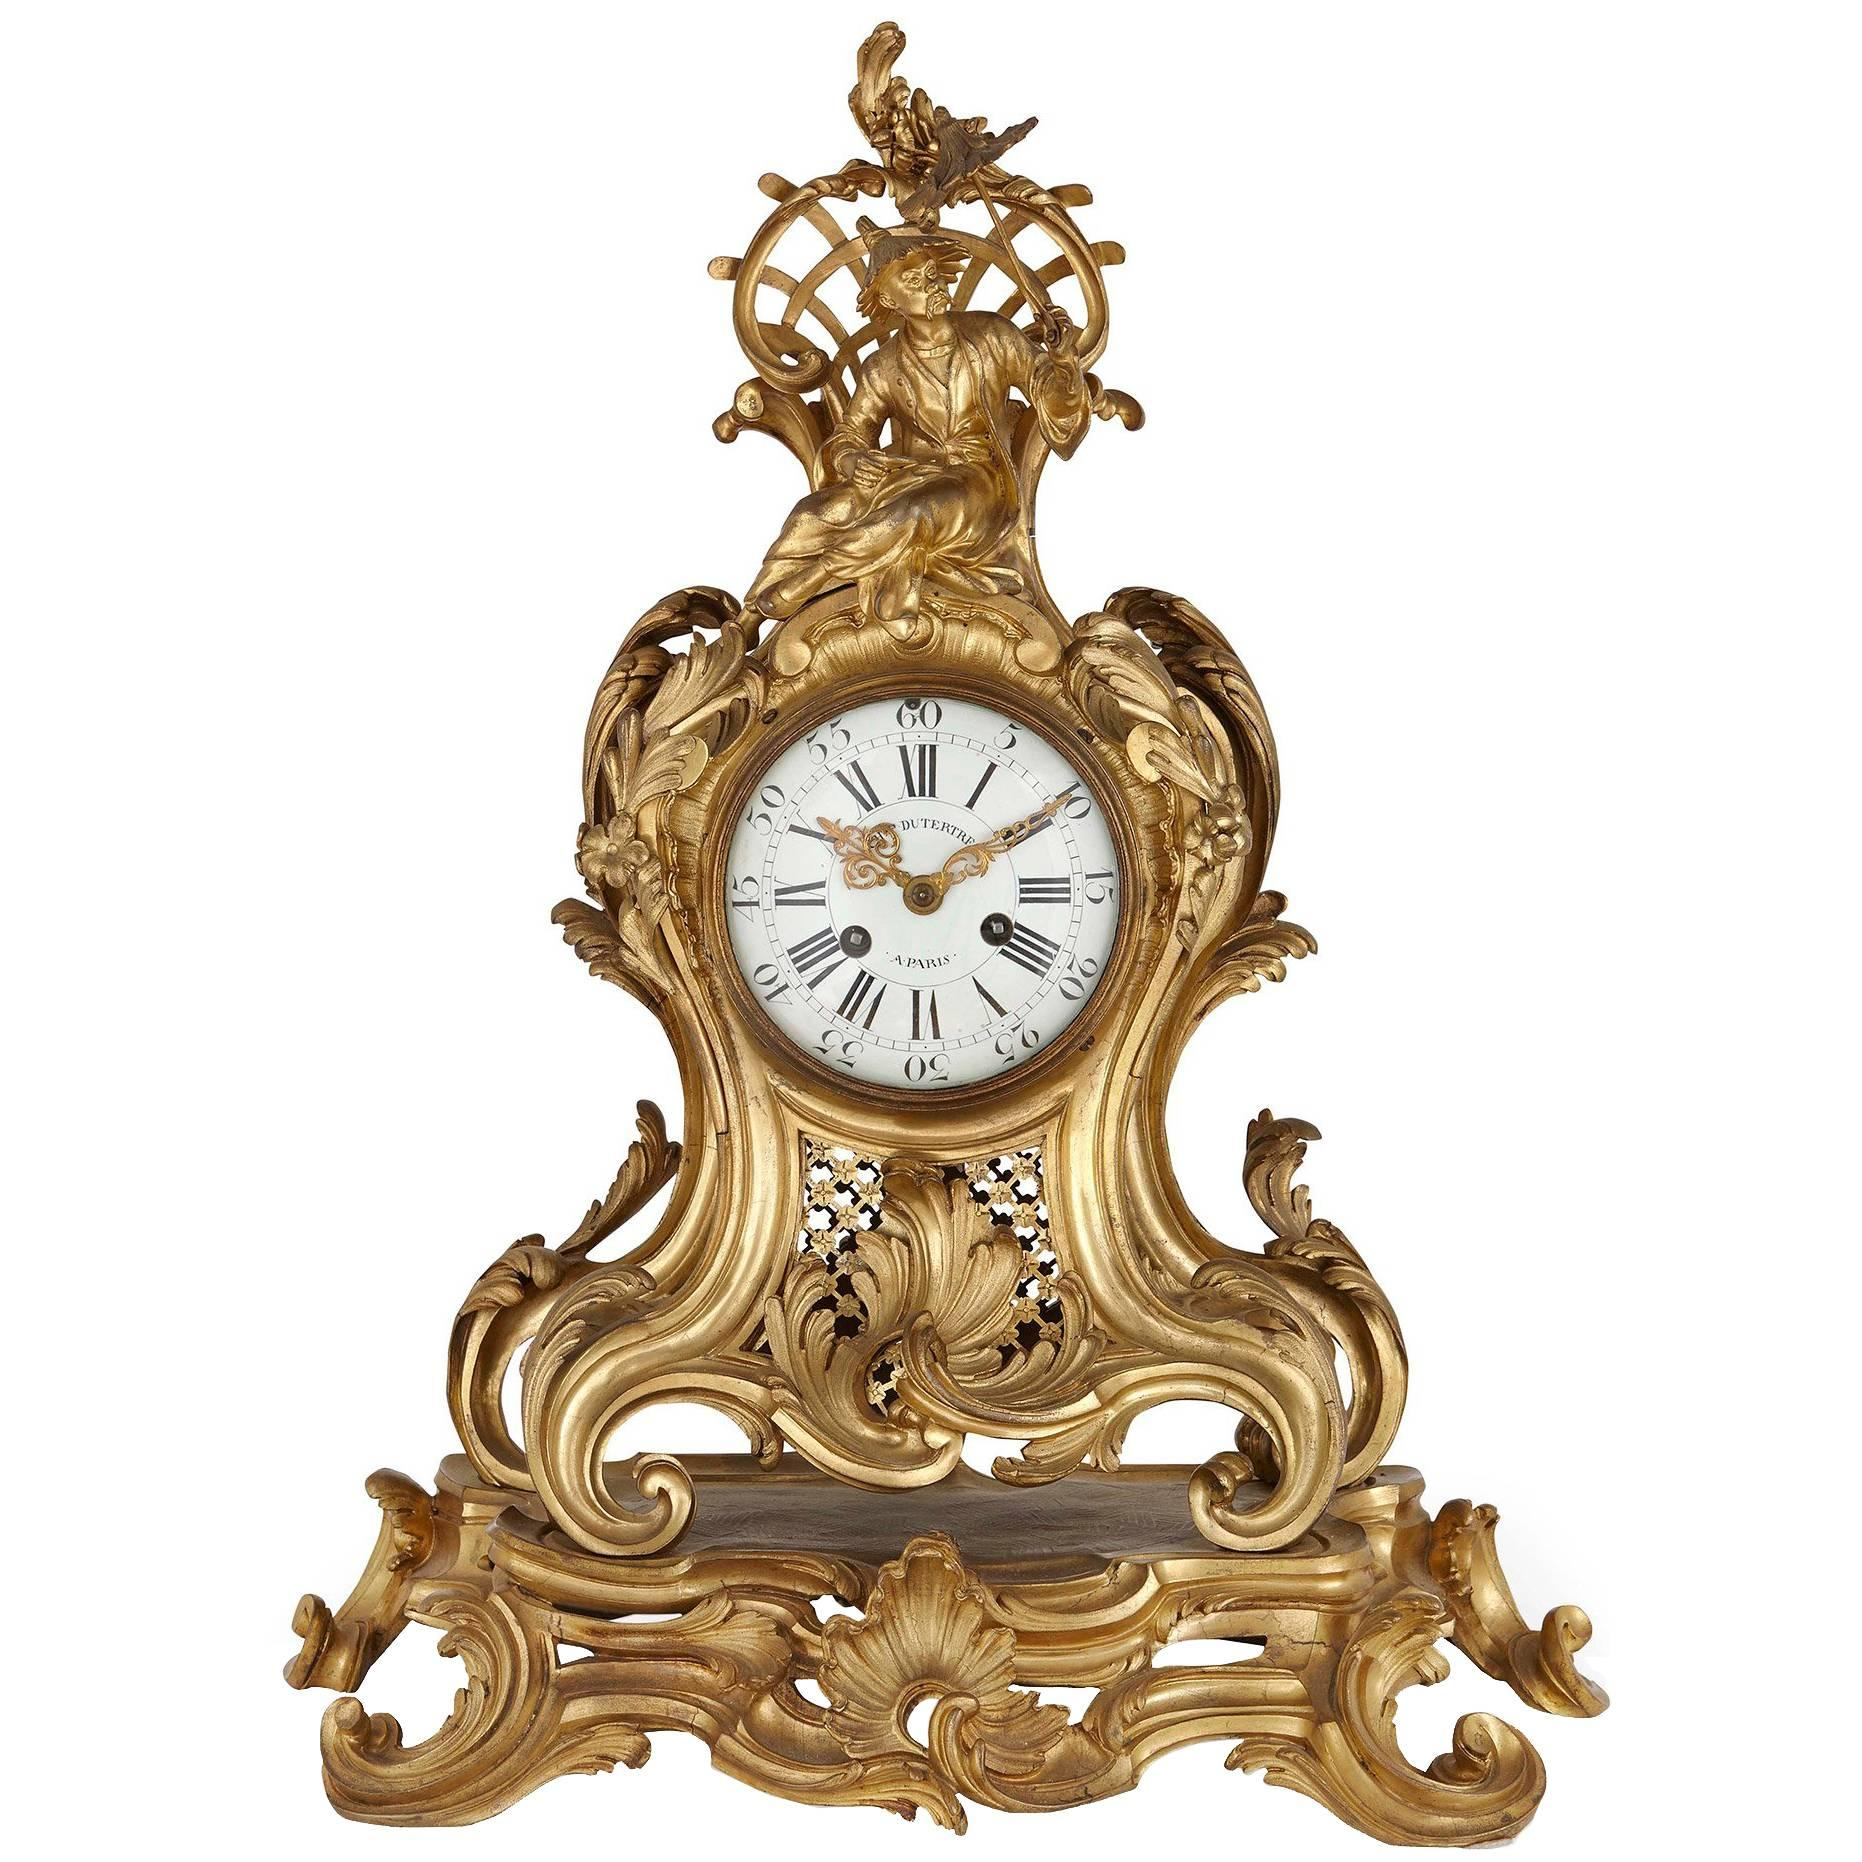 louis xv ormolu mantel clock by charles du tertre in the chinoiserie style for sale at 1stdibs - Mantel Clock